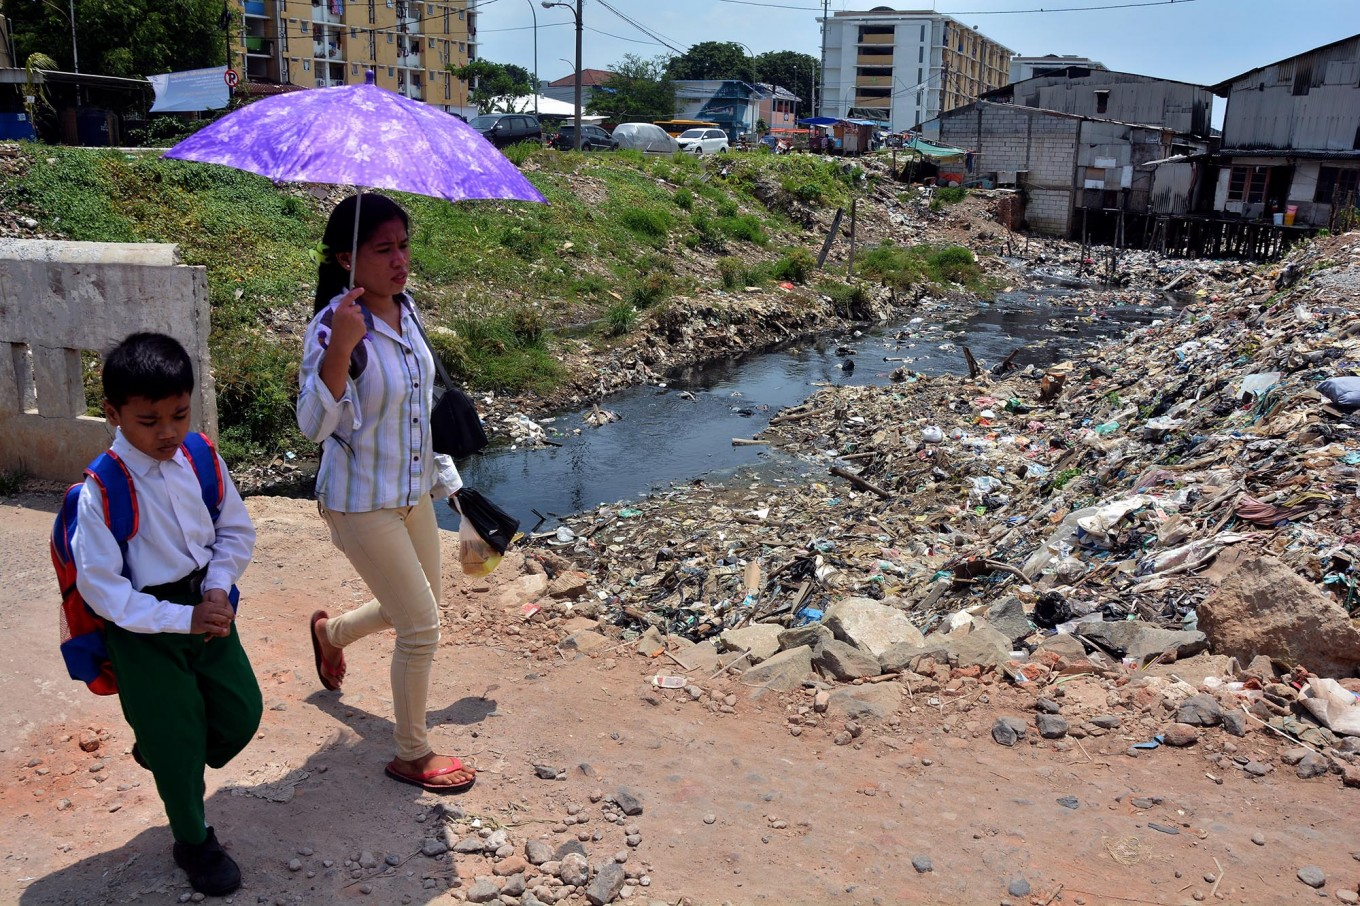 Jakarta's river water severely polluted: Bappenas